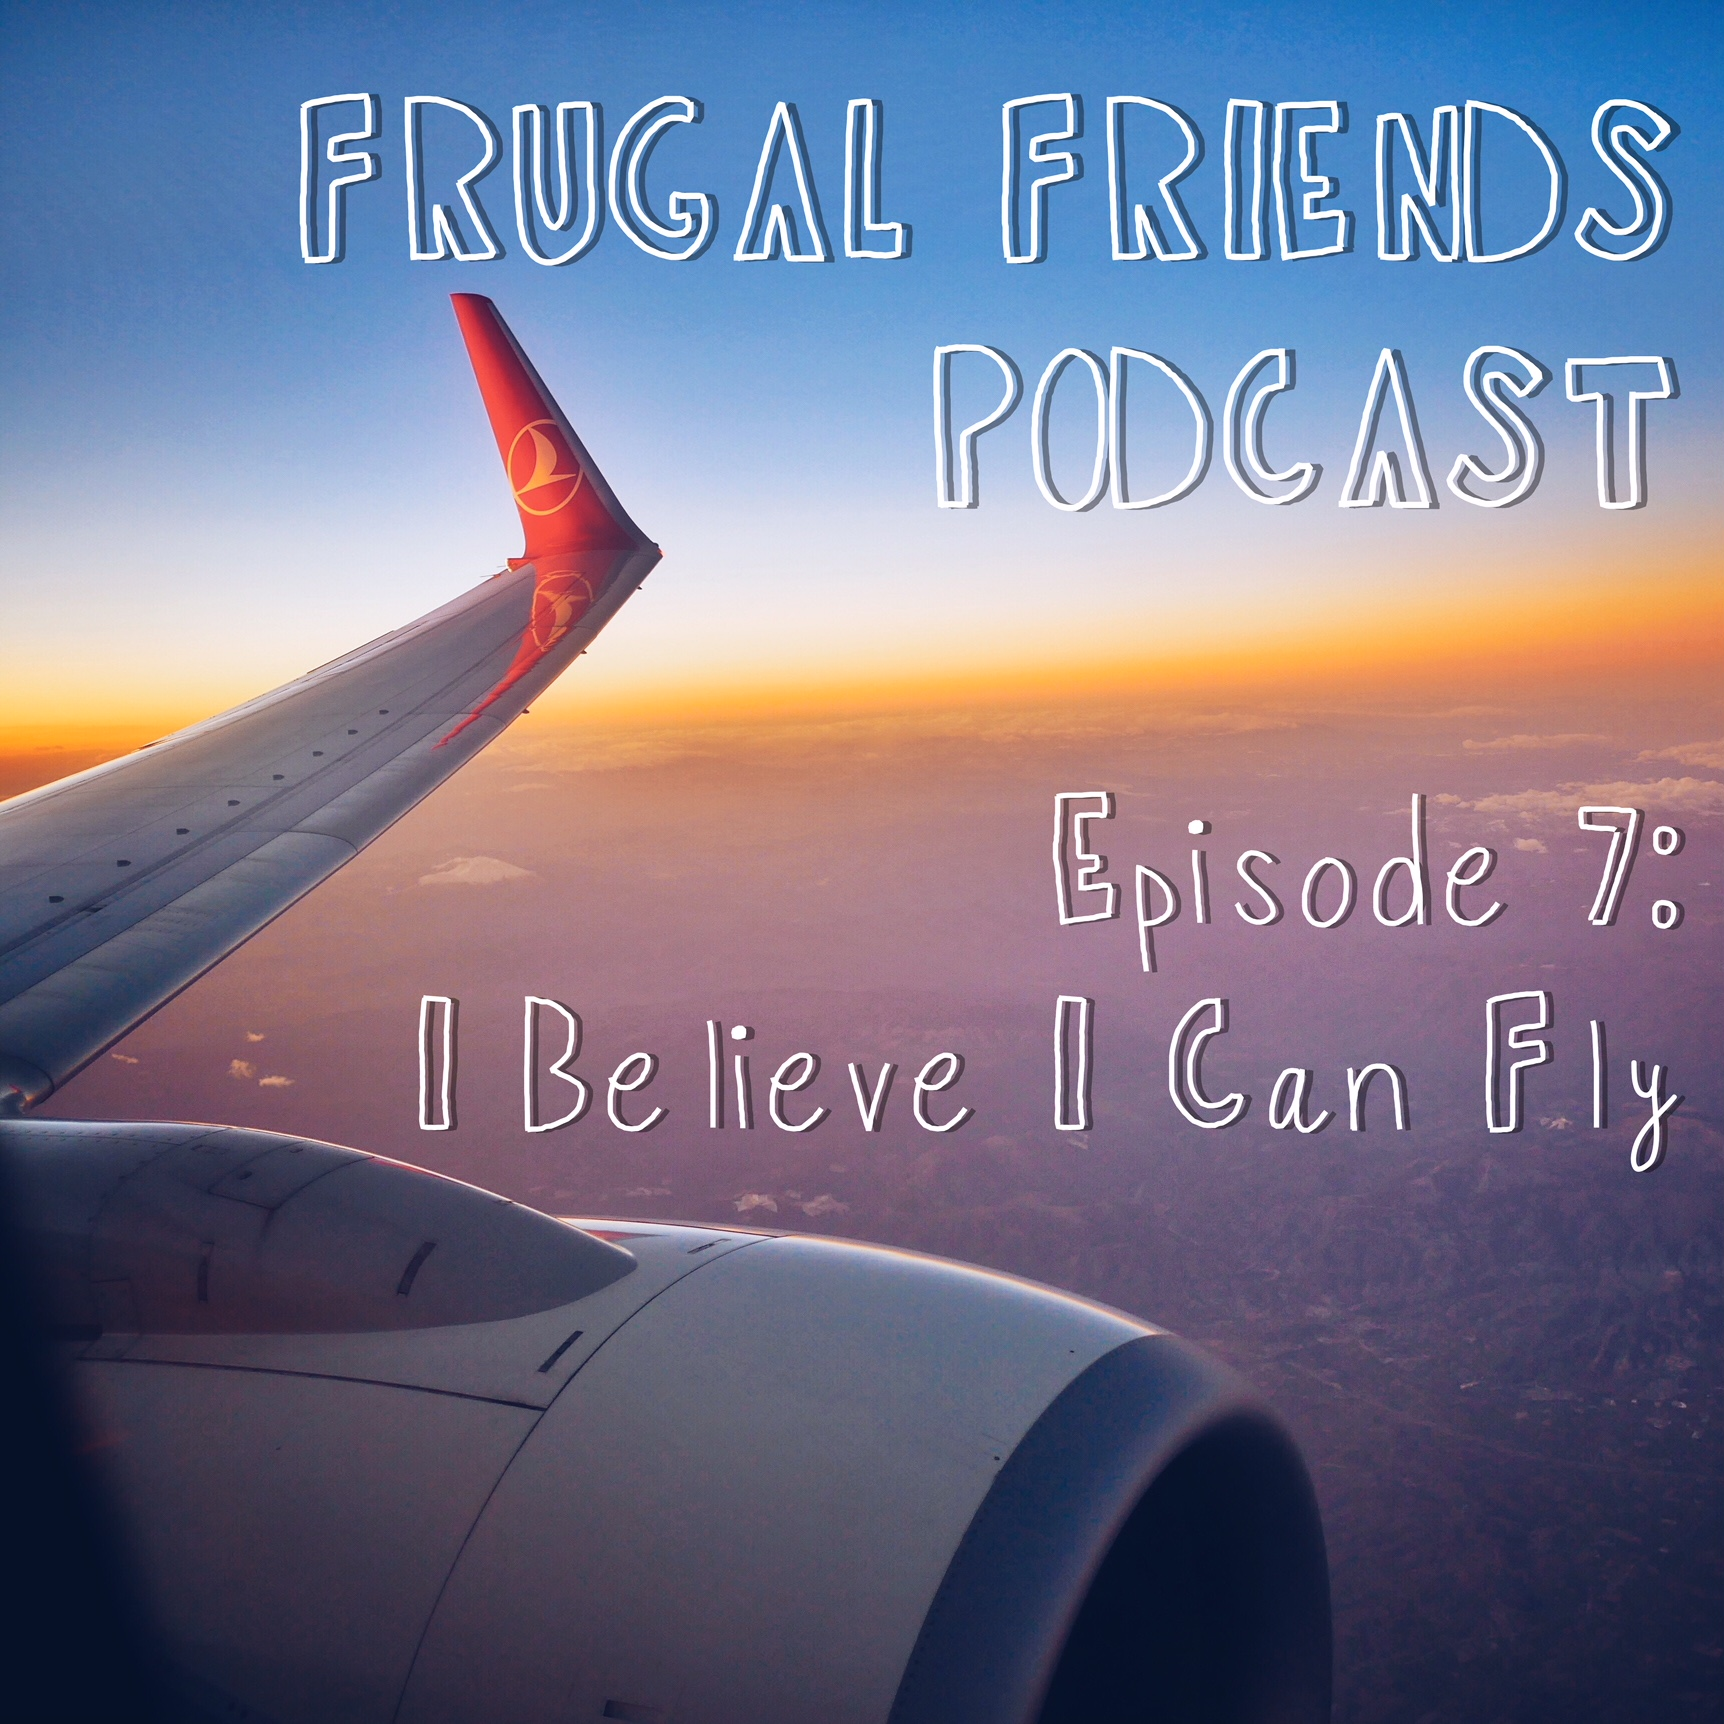 Episode 7: How to Save Money on Flights